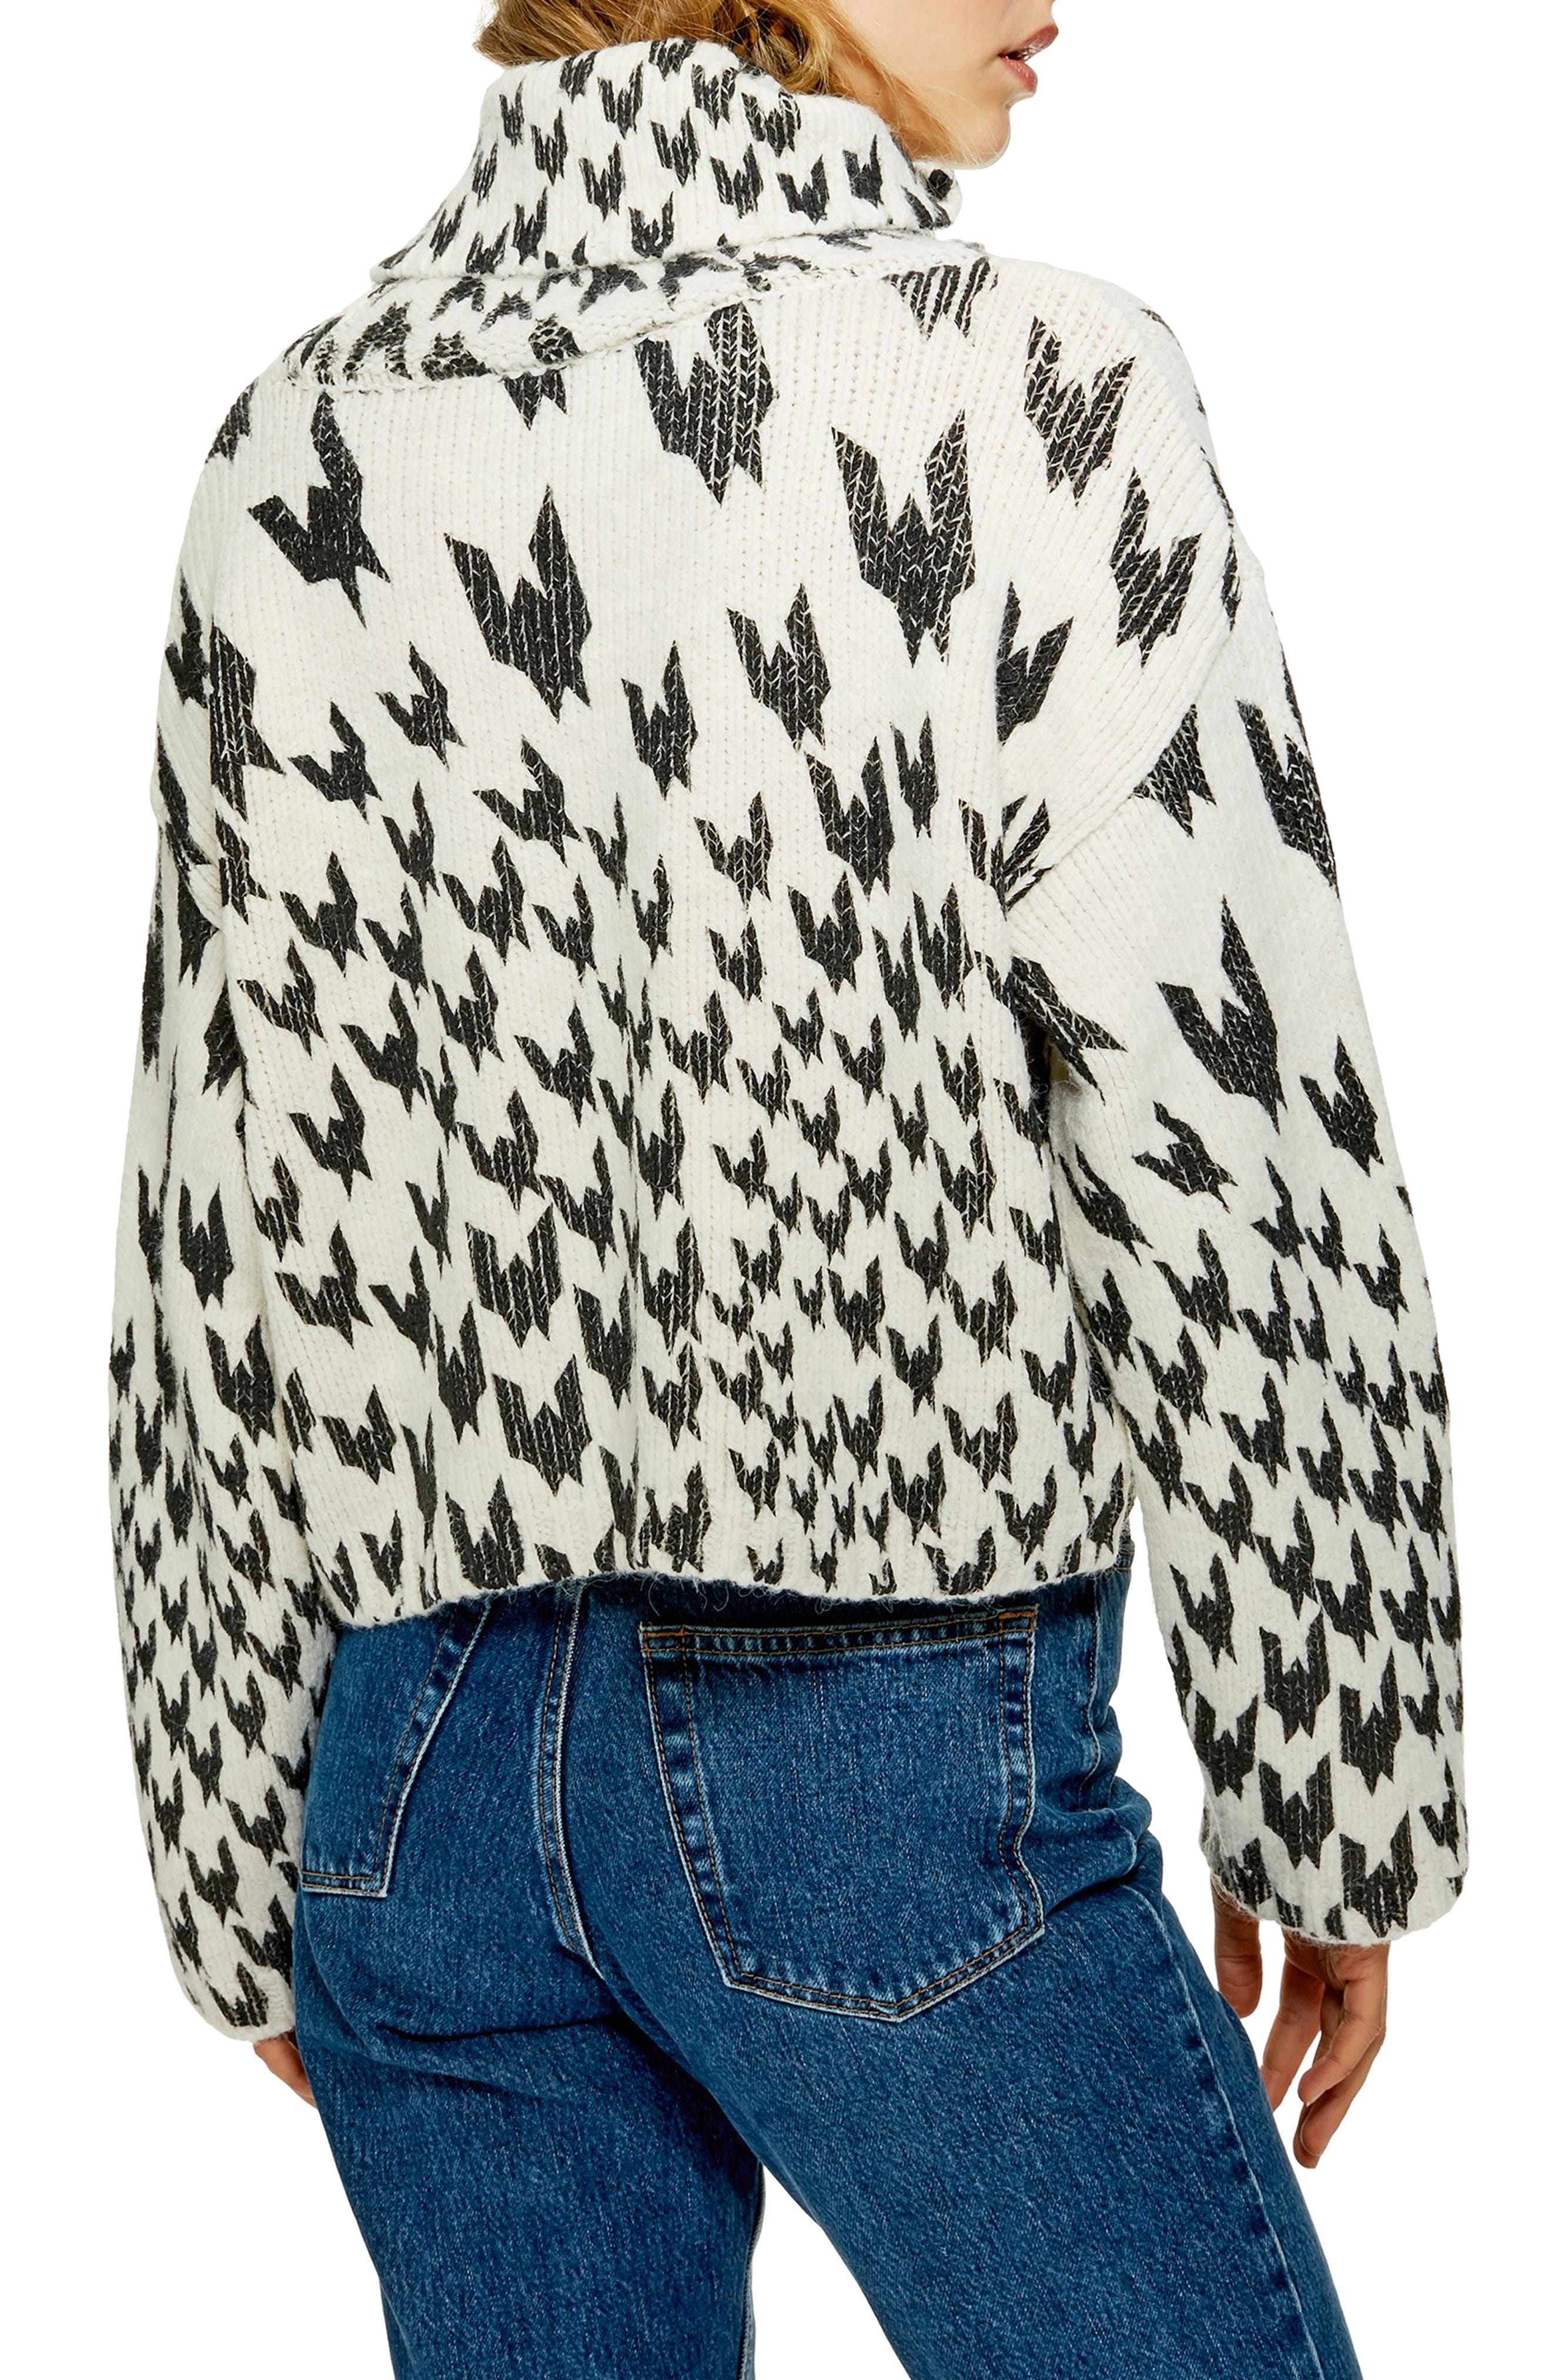 TOPSHOP,                             Dogtooth Chunky Roll Neck Sweater,                             Alternate thumbnail 2, color,                             IVORY MULTI